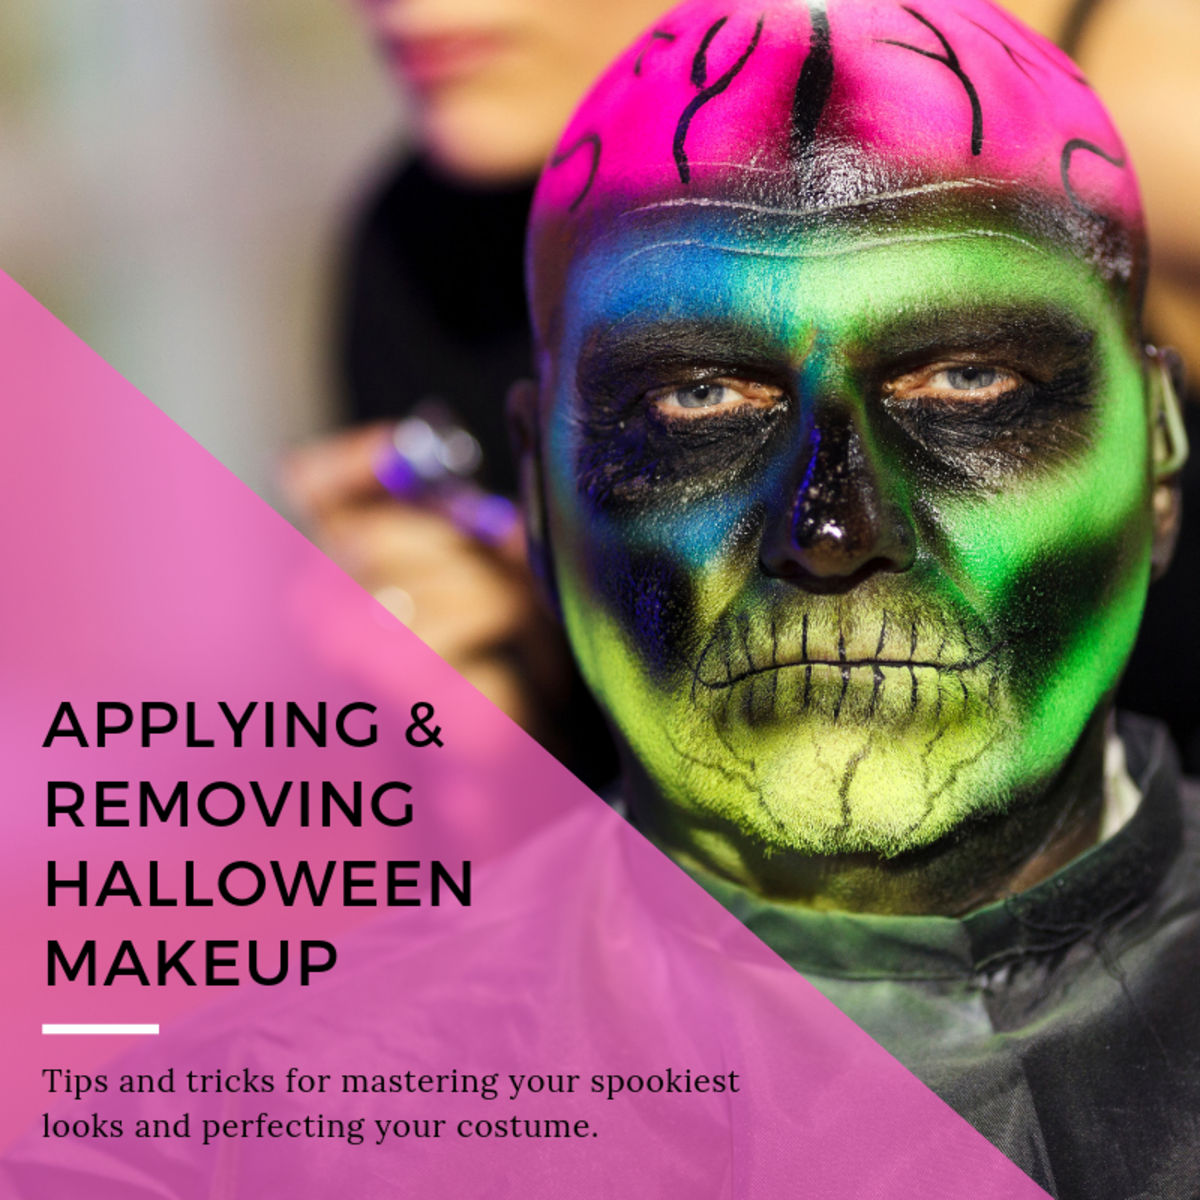 This article will break down various tips and tricks for applying makeup to your face for that perfect Halloween costume, as well as provide guidance on how to take it all off at the end of the night.